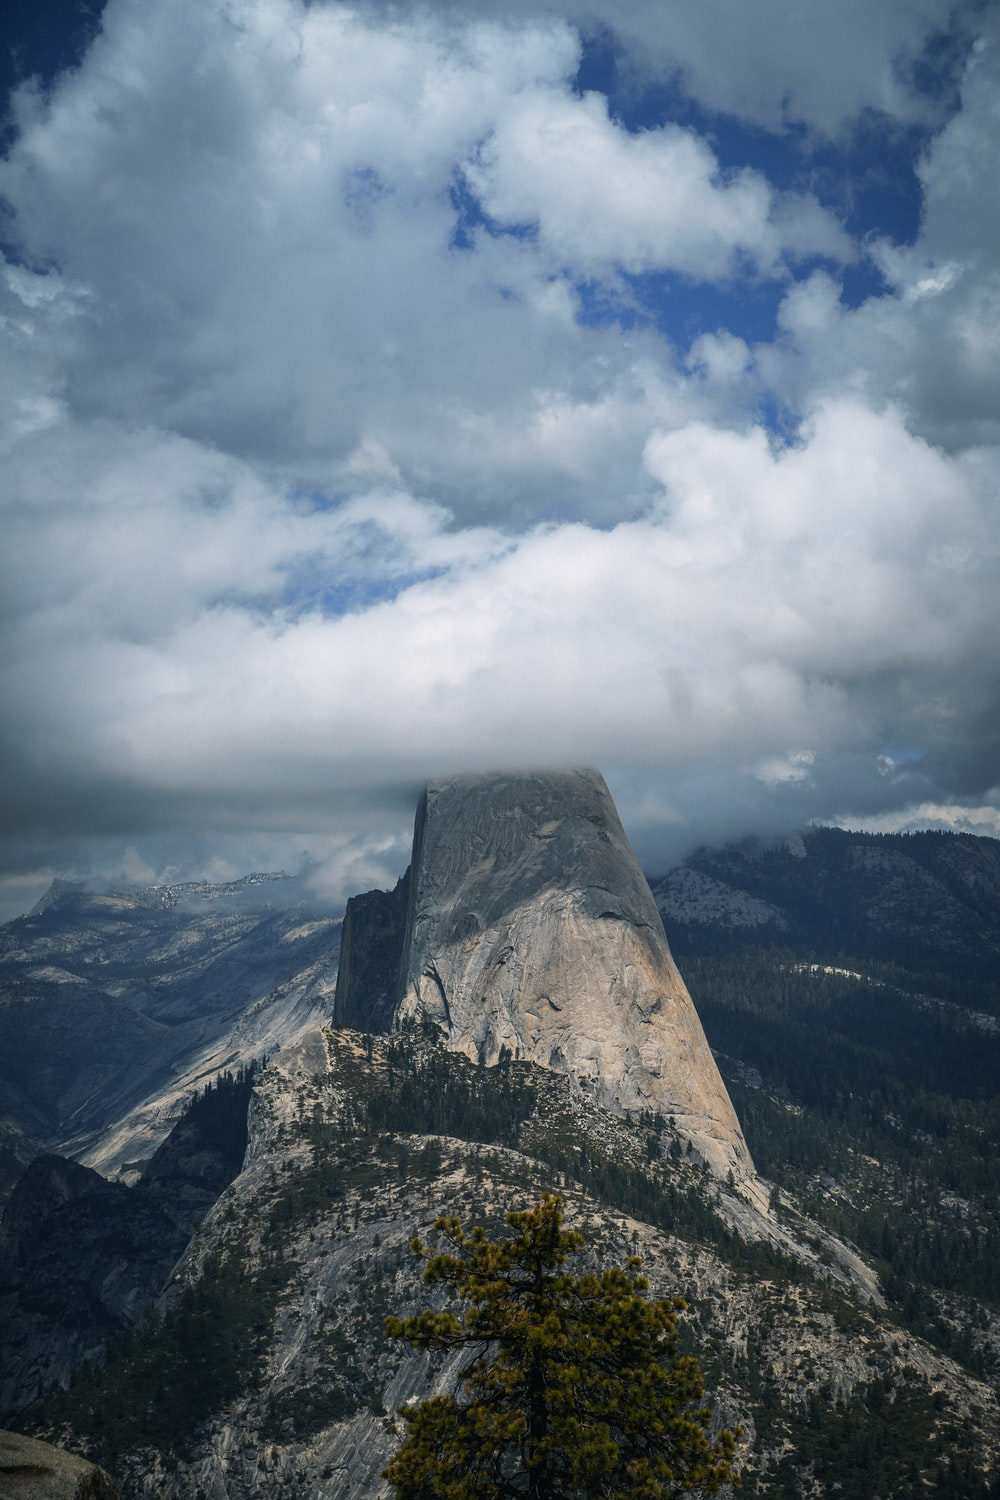 gray rocky mountain under white clouds during daytime